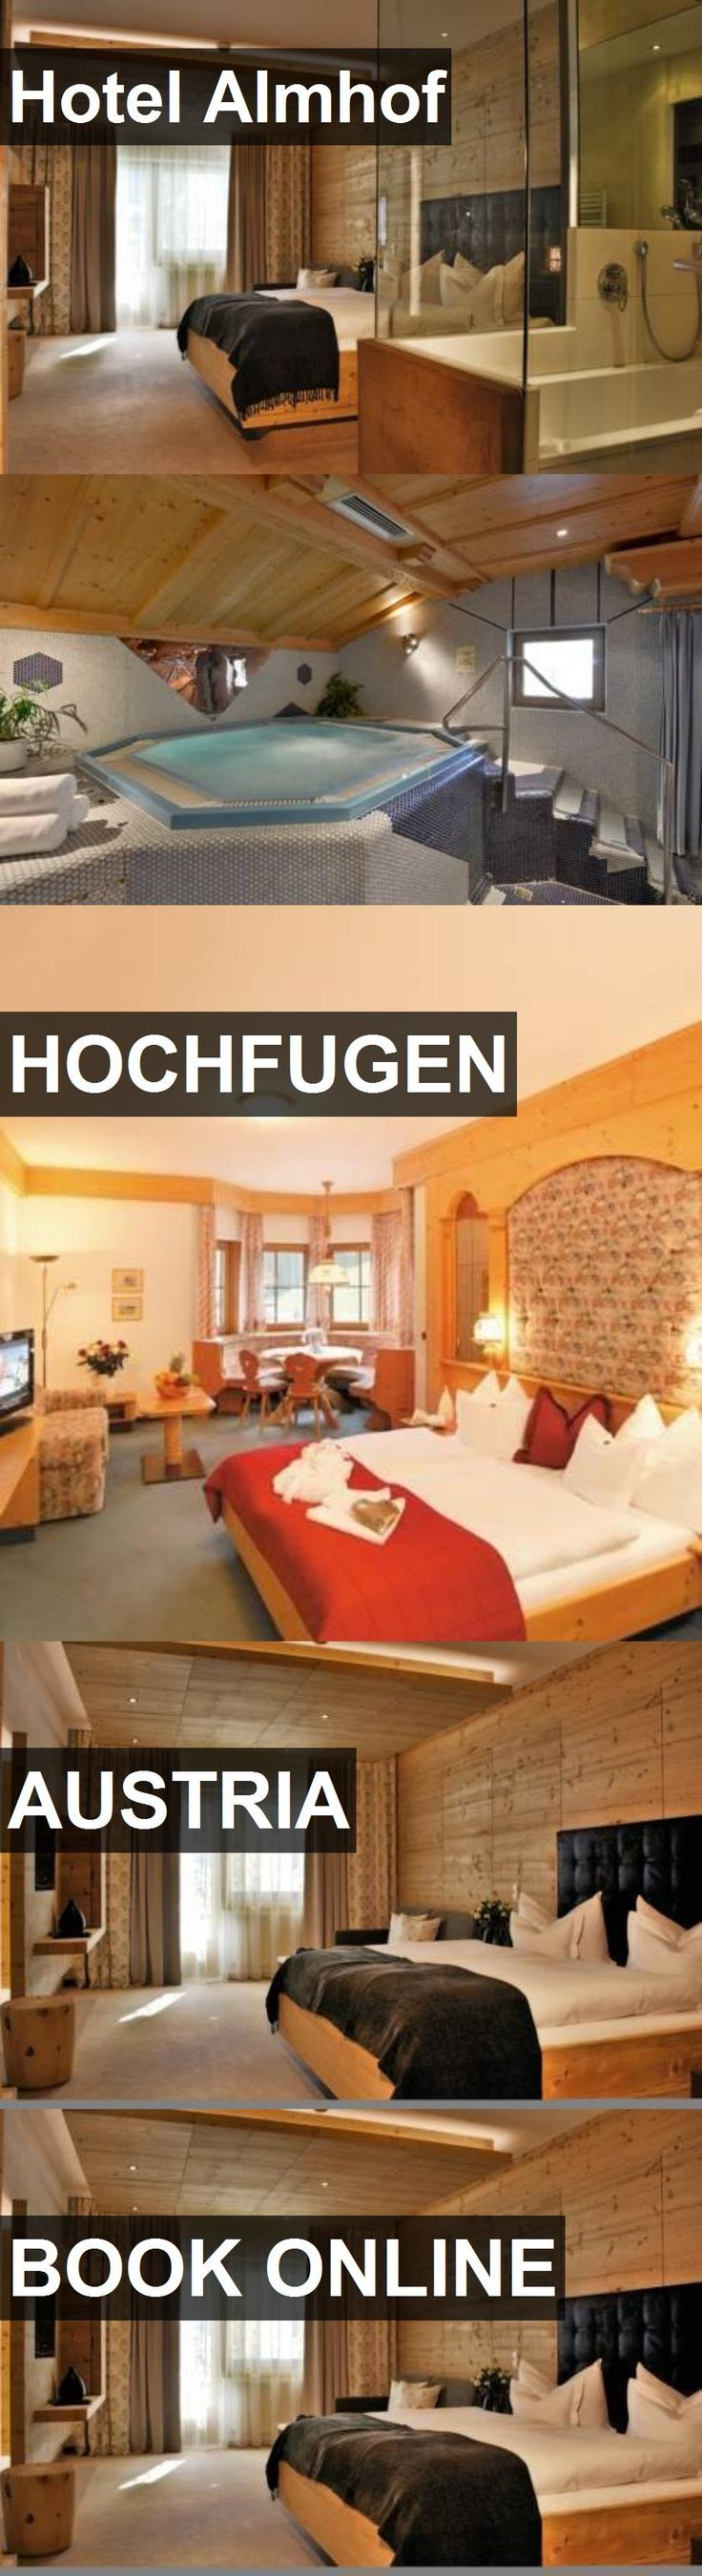 Hotel Almhof in Hochfugen, Austria. For more information, photos, reviews and best prices please follow the link. #Austria #Hochfugen #travel #vacation #hotel